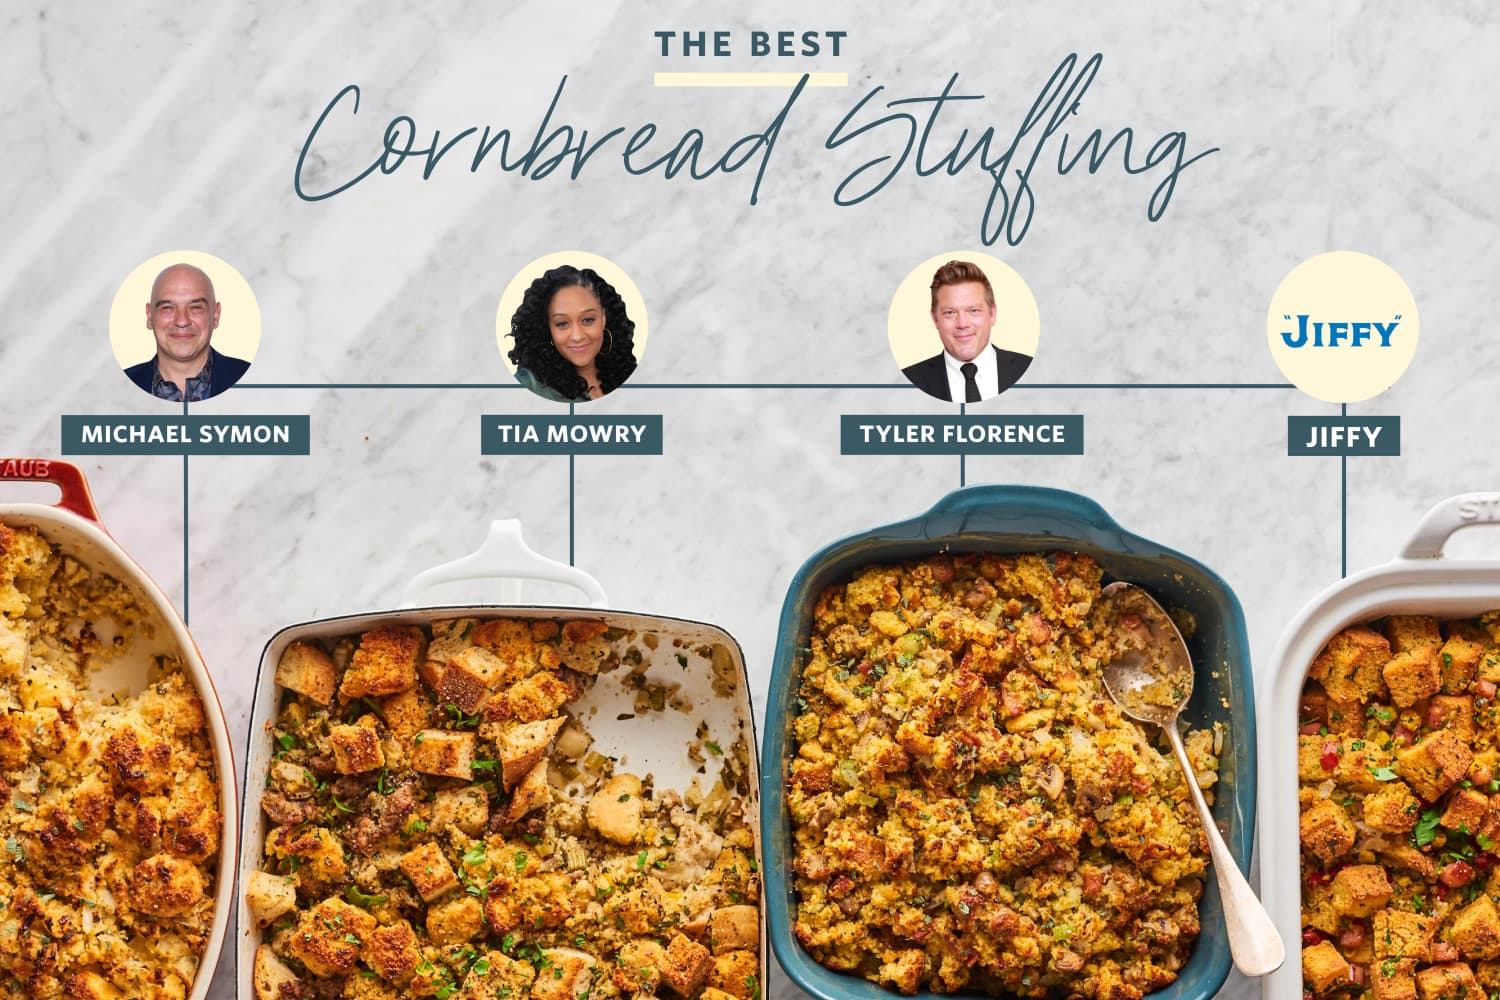 We Tested 4 Popular Cornbread Stuffing Recipes and Found a Clear Winner